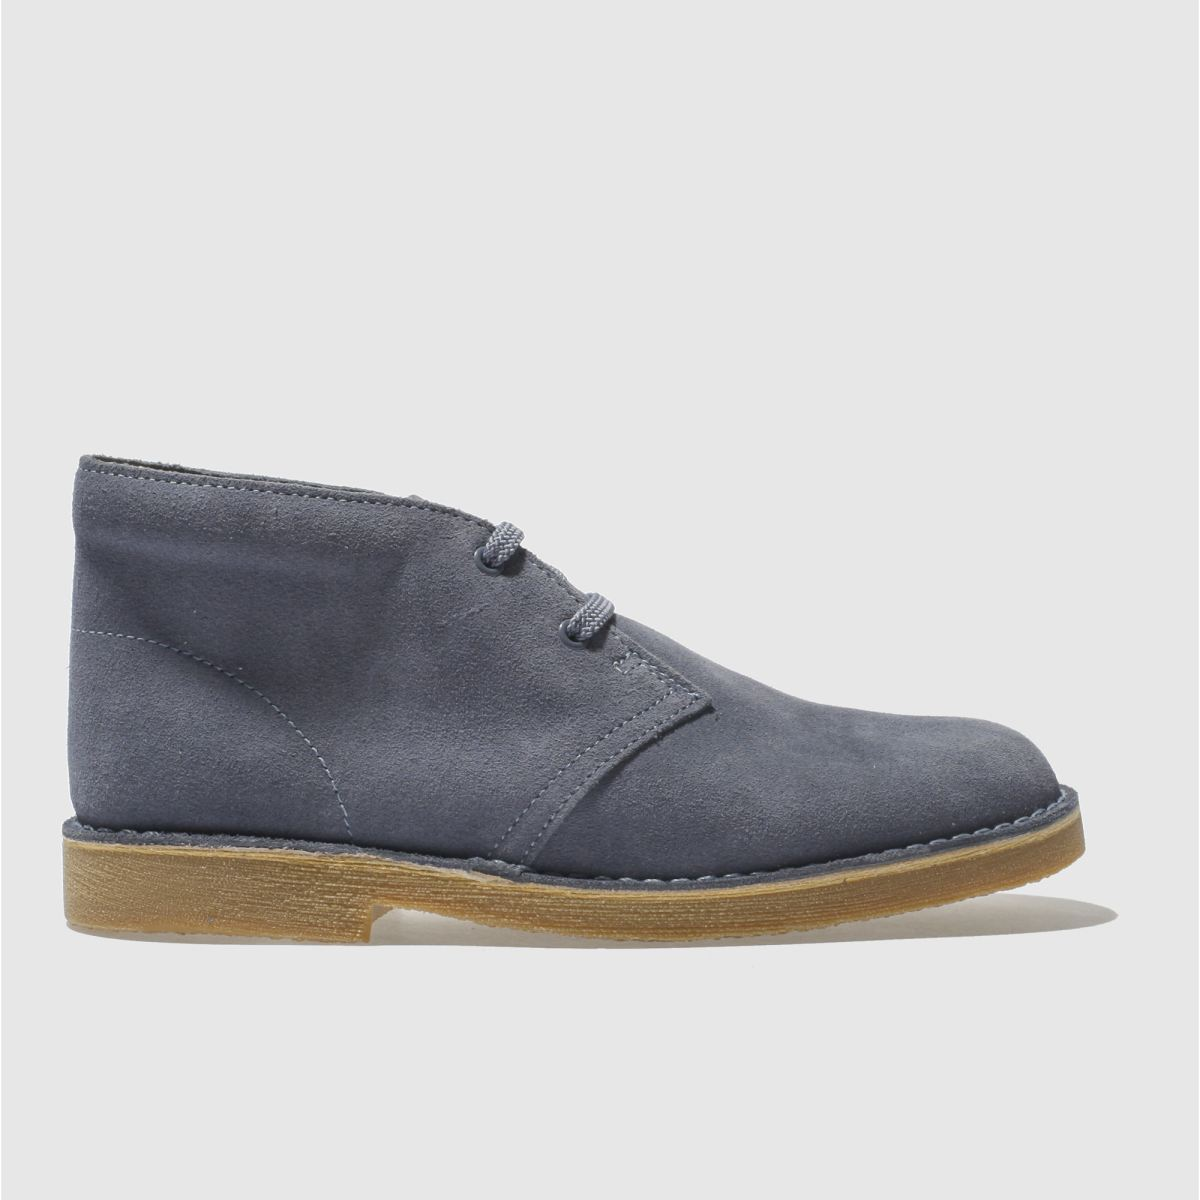 Clarks Originals Blue Desert Boot Unisex Youth Youth